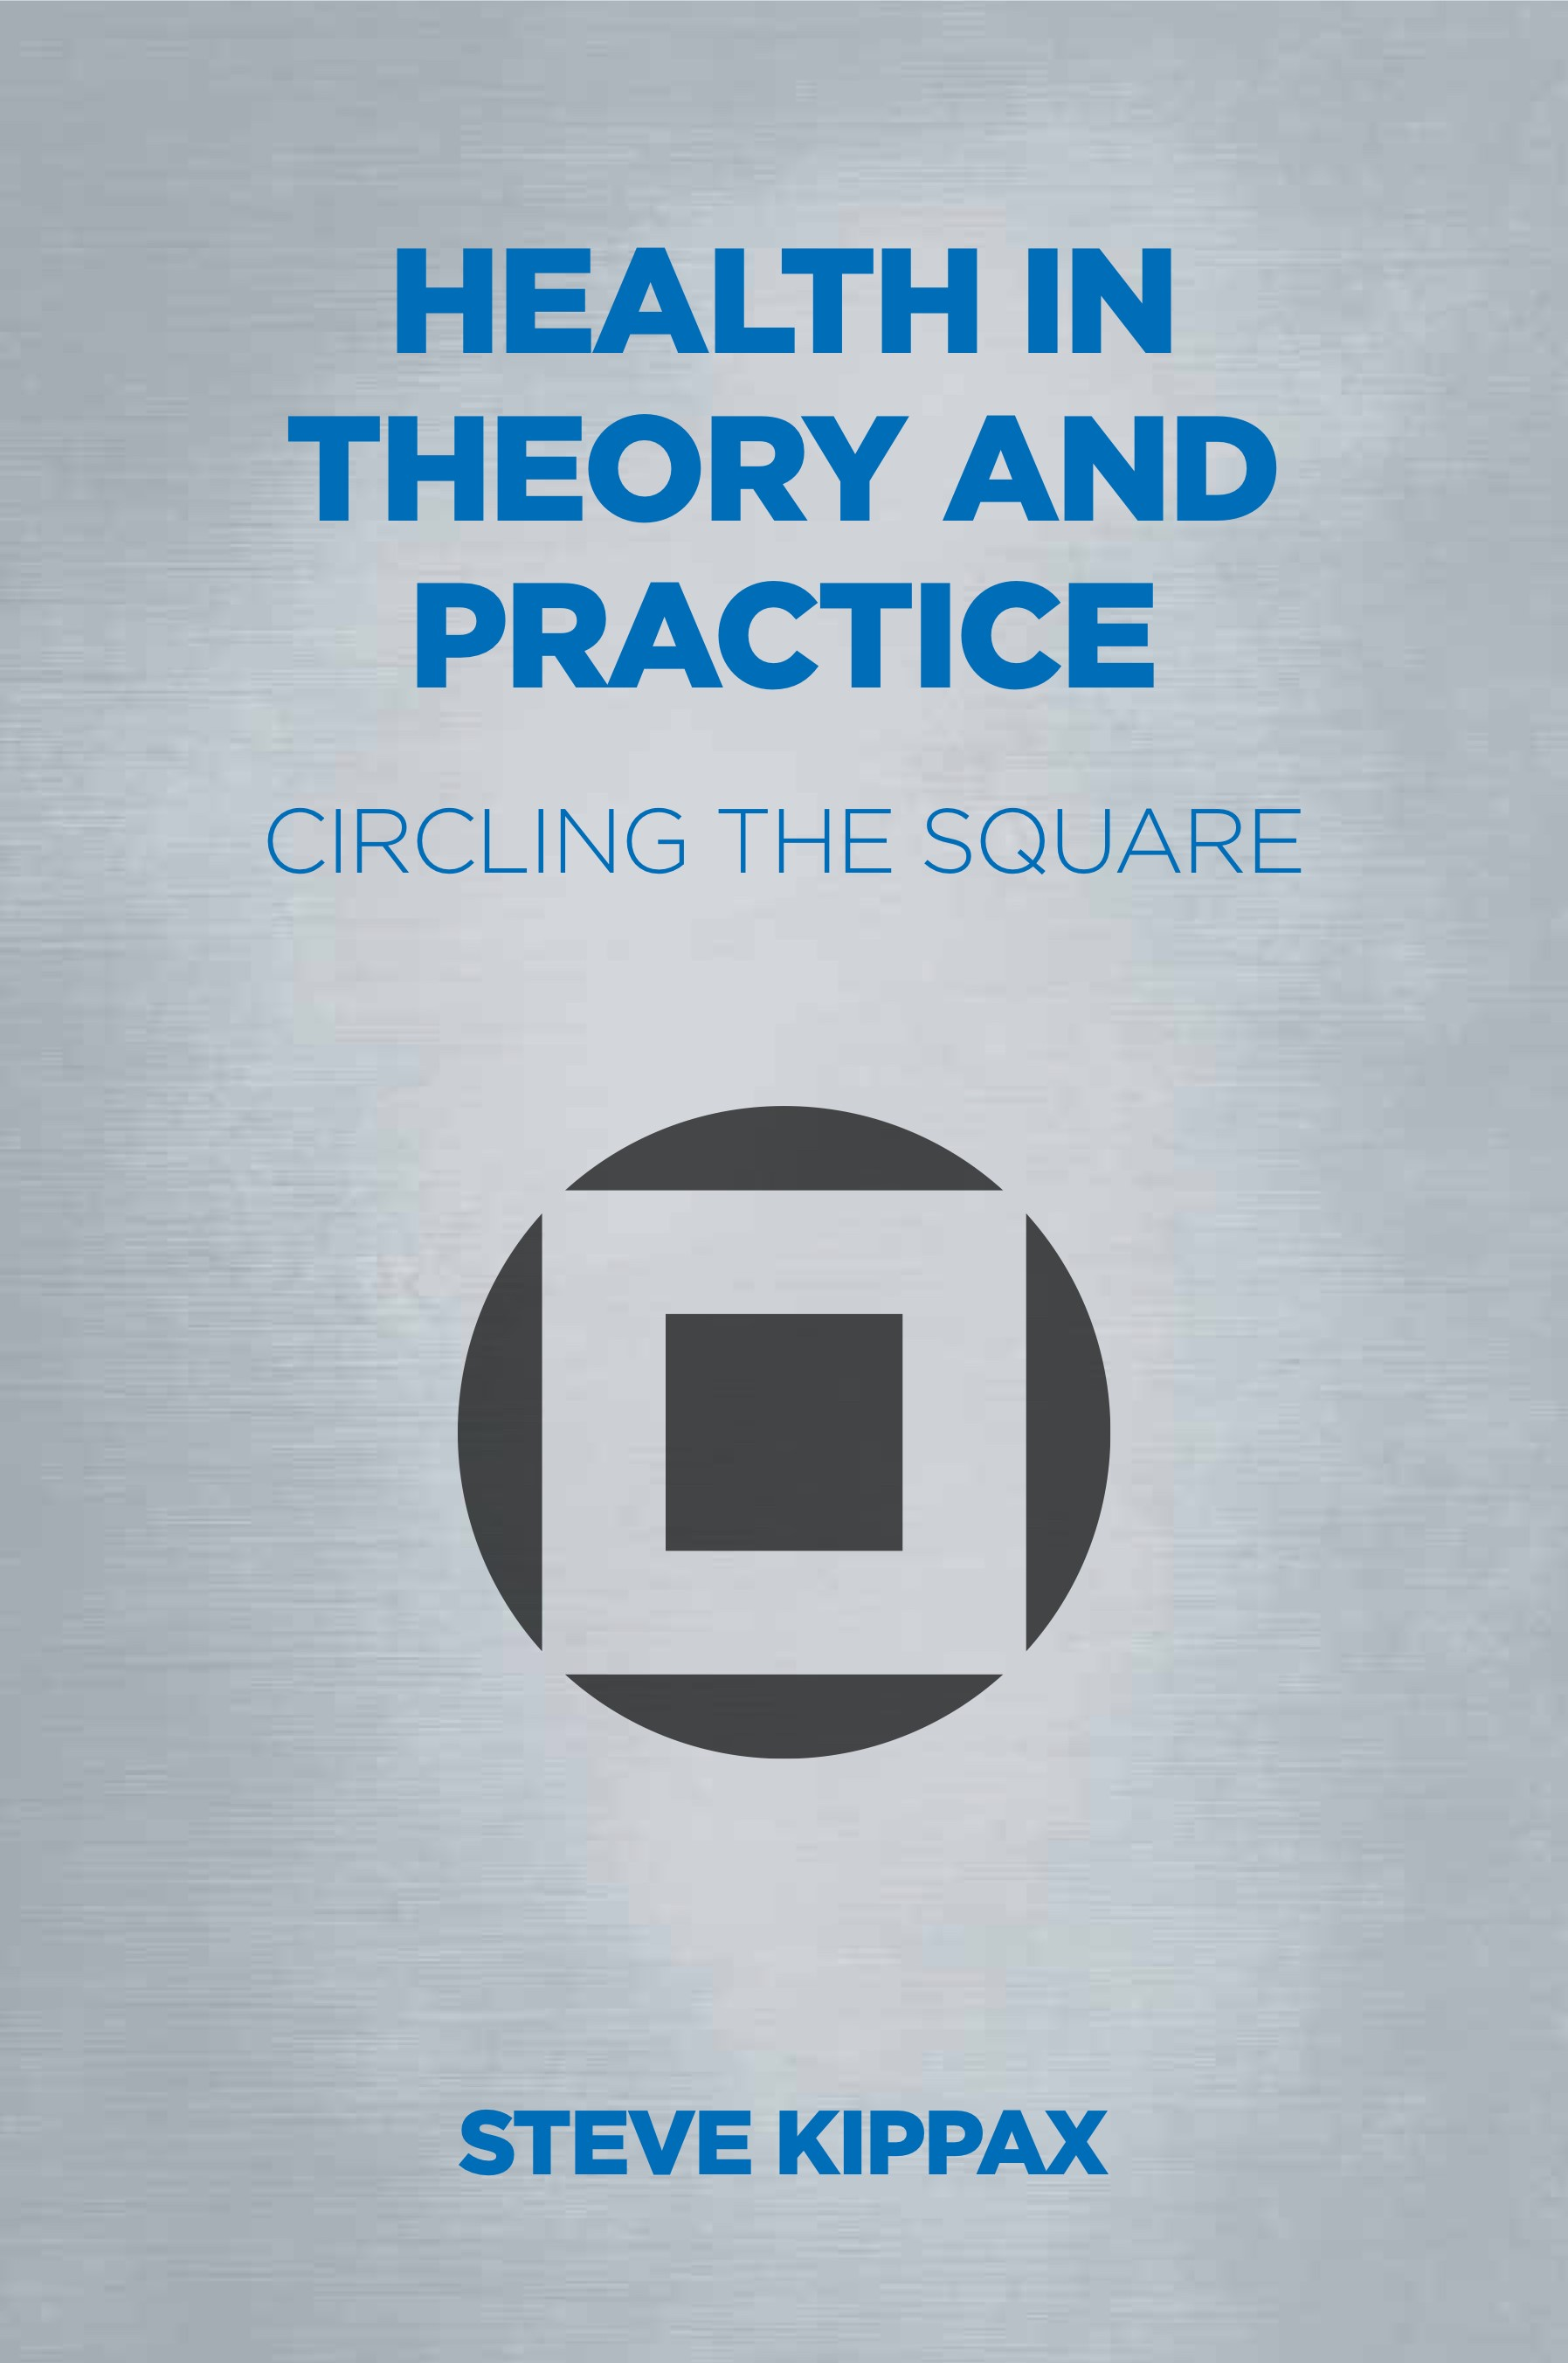 Health in Theory and Practice